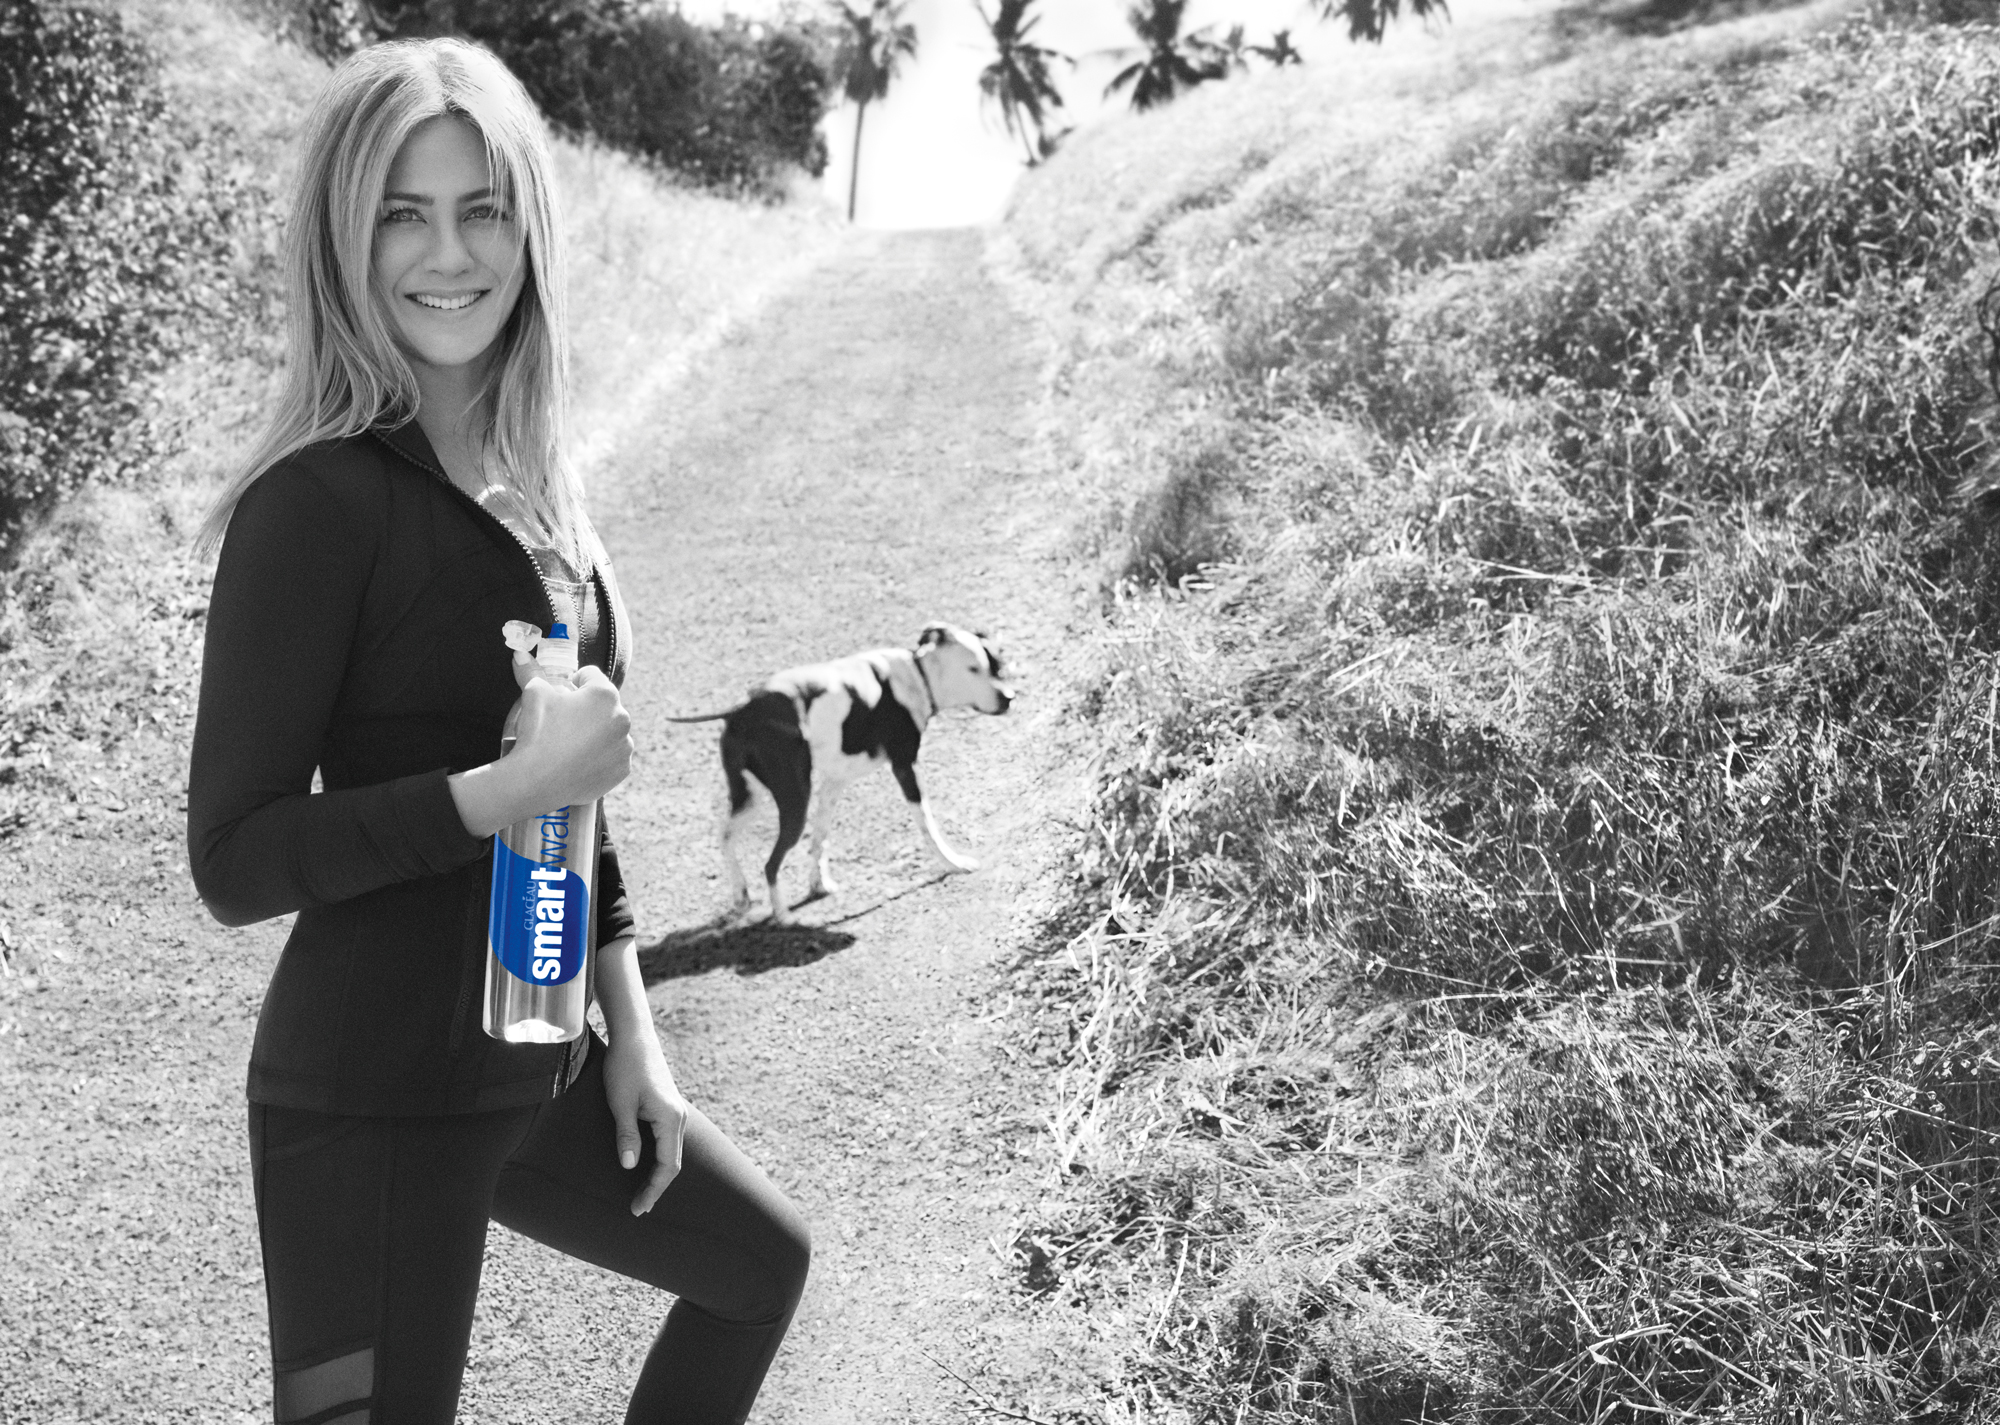 Jennifer Aniston's Latest Smartwater Campaign Gives a Glimpse of Her Glamorous Life